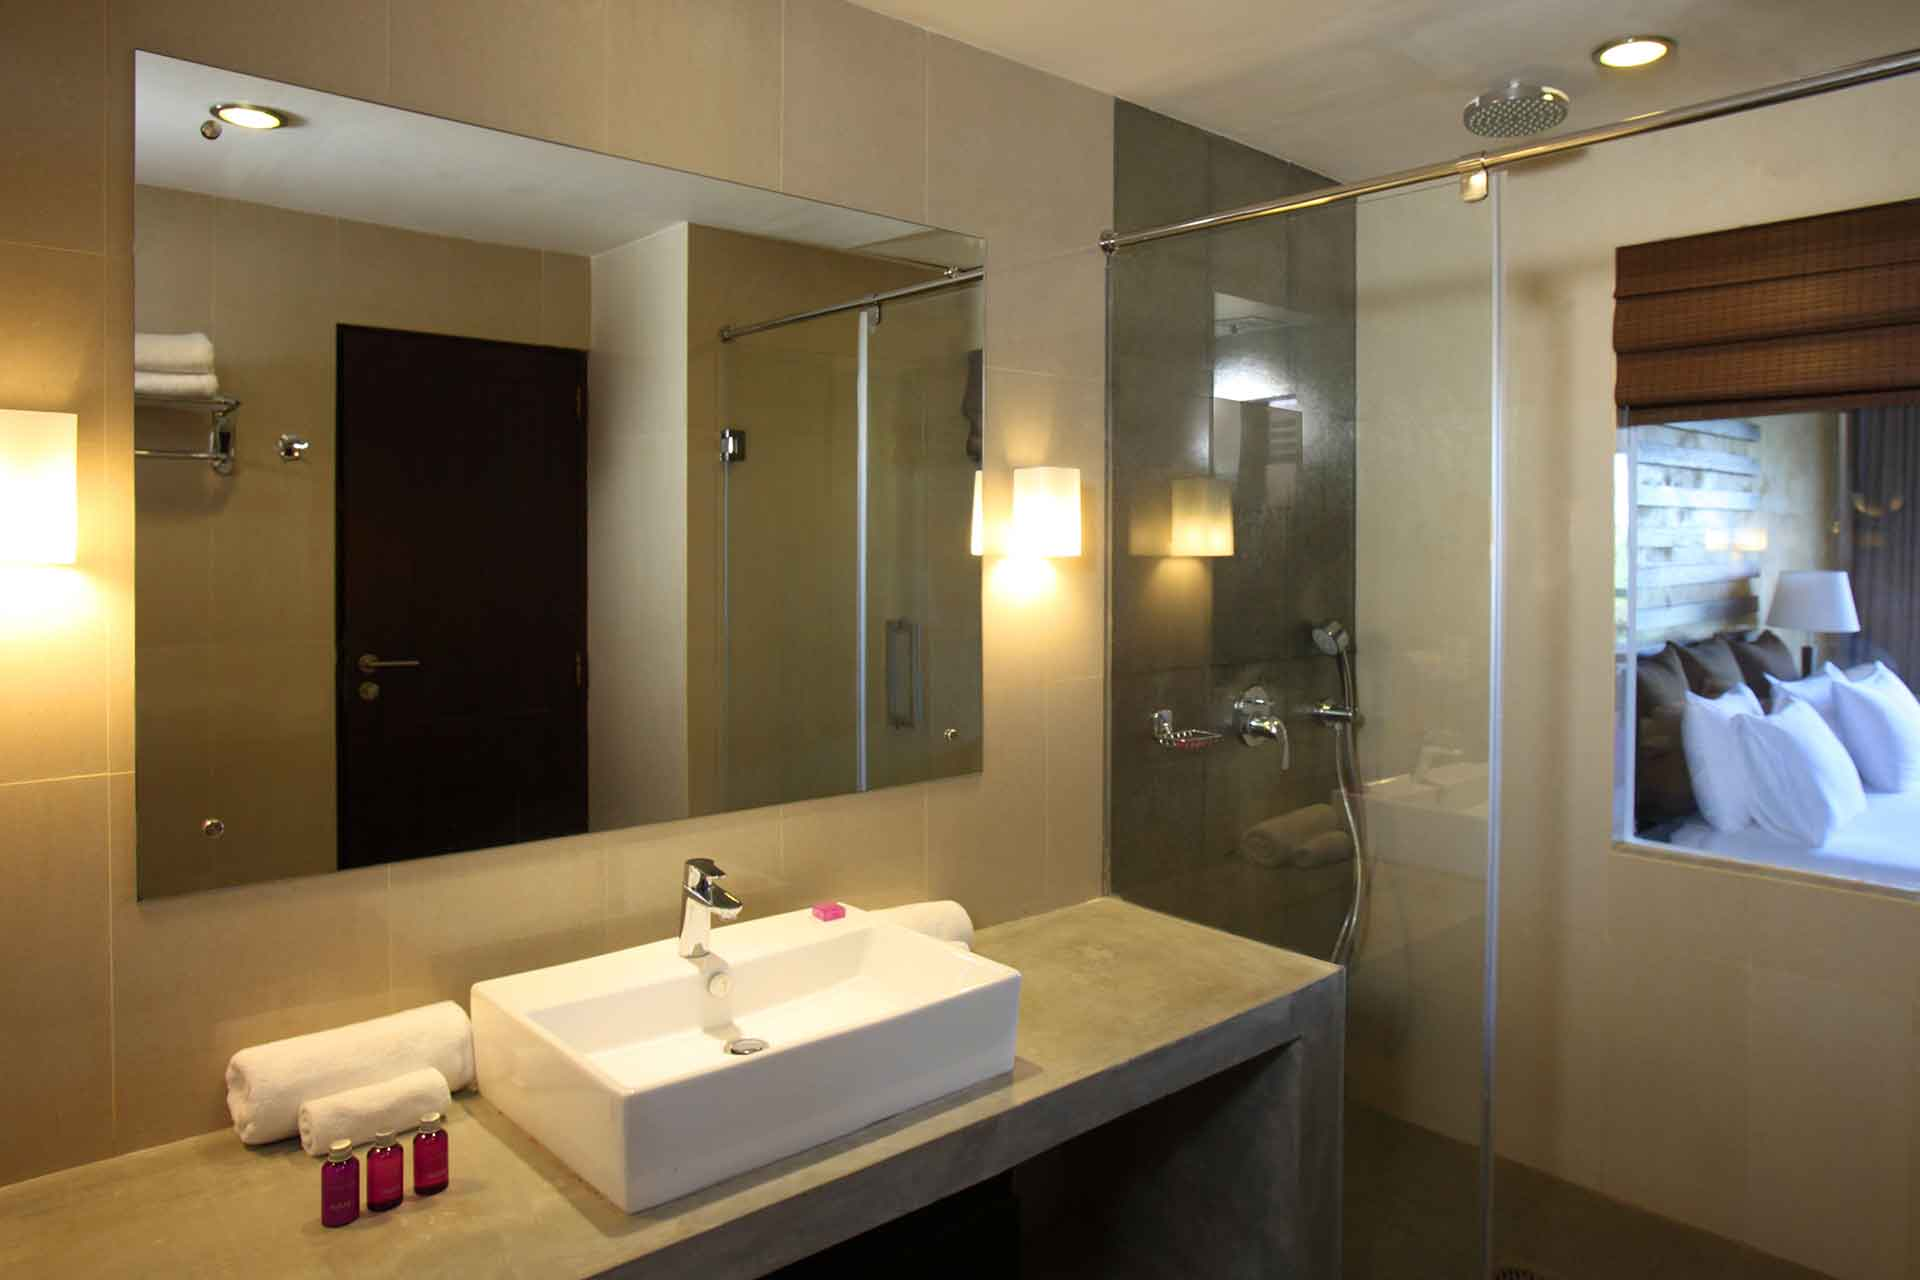 Bathroom interior of a superior room